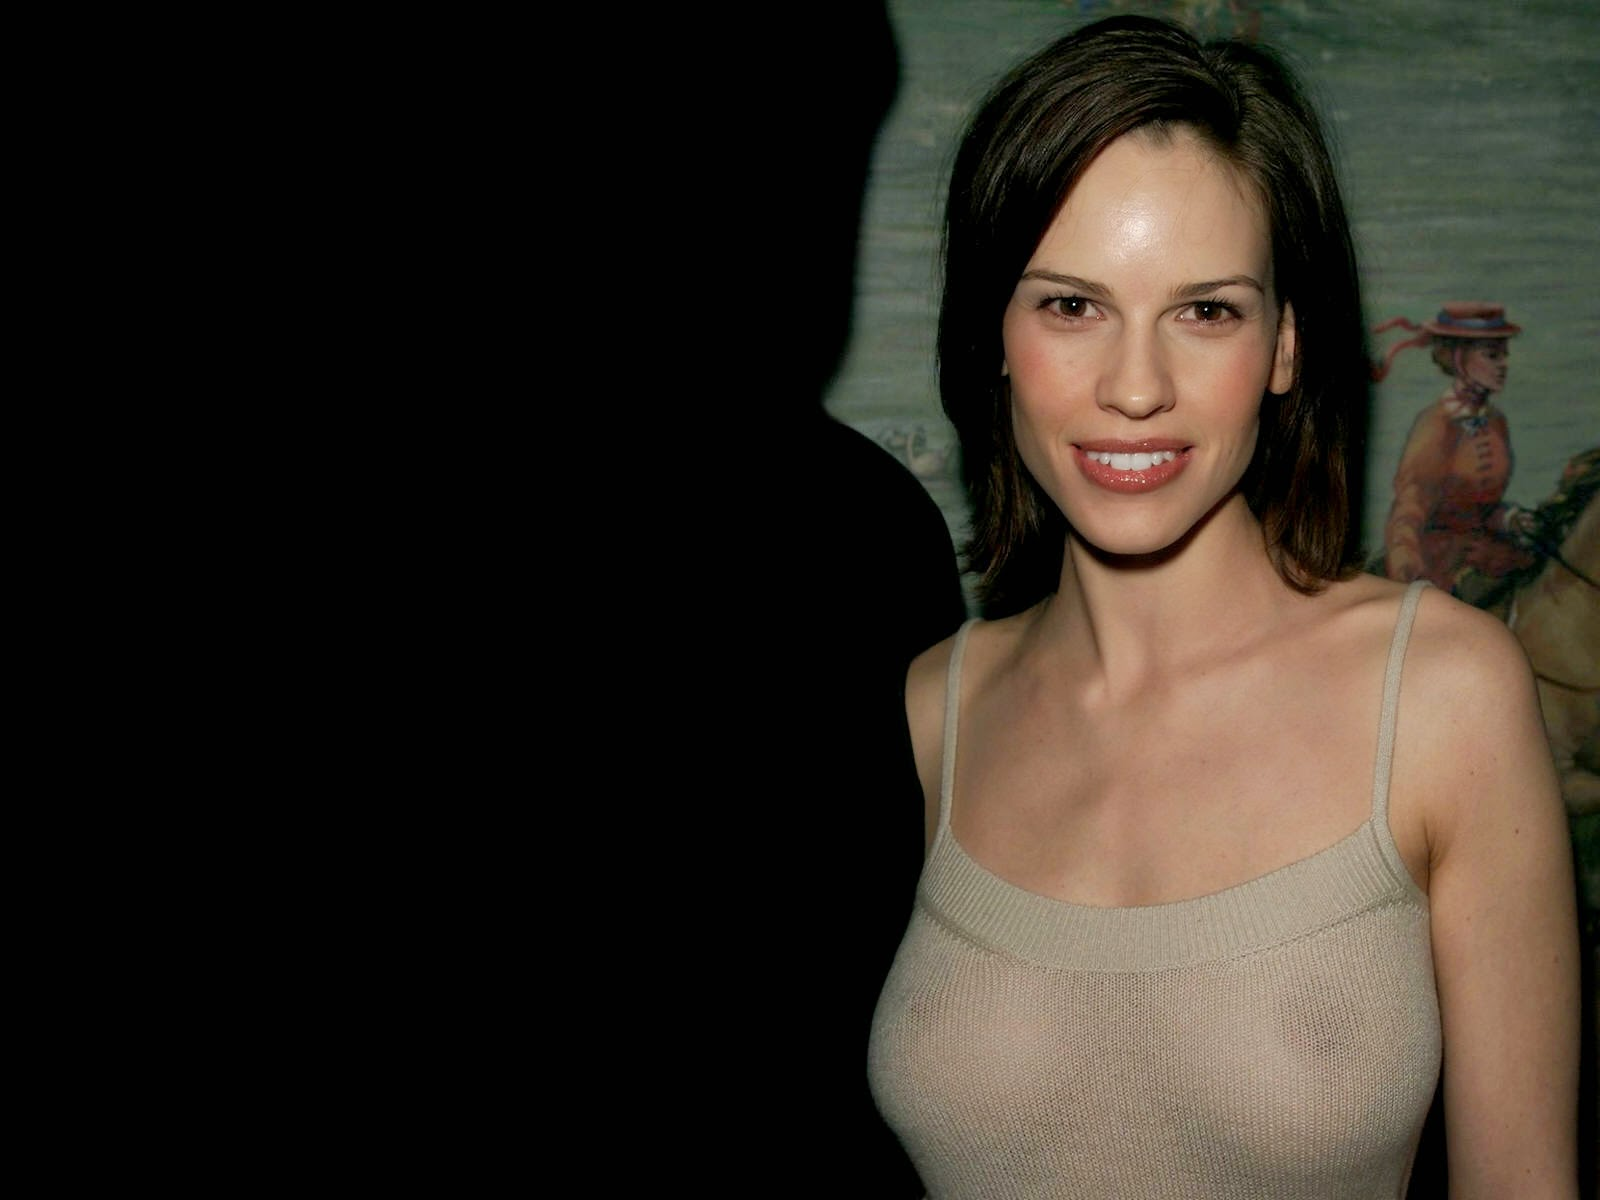 Twitter Hilary Ann Swank nudes (16 foto and video), Sexy, Paparazzi, Boobs, see through 2018